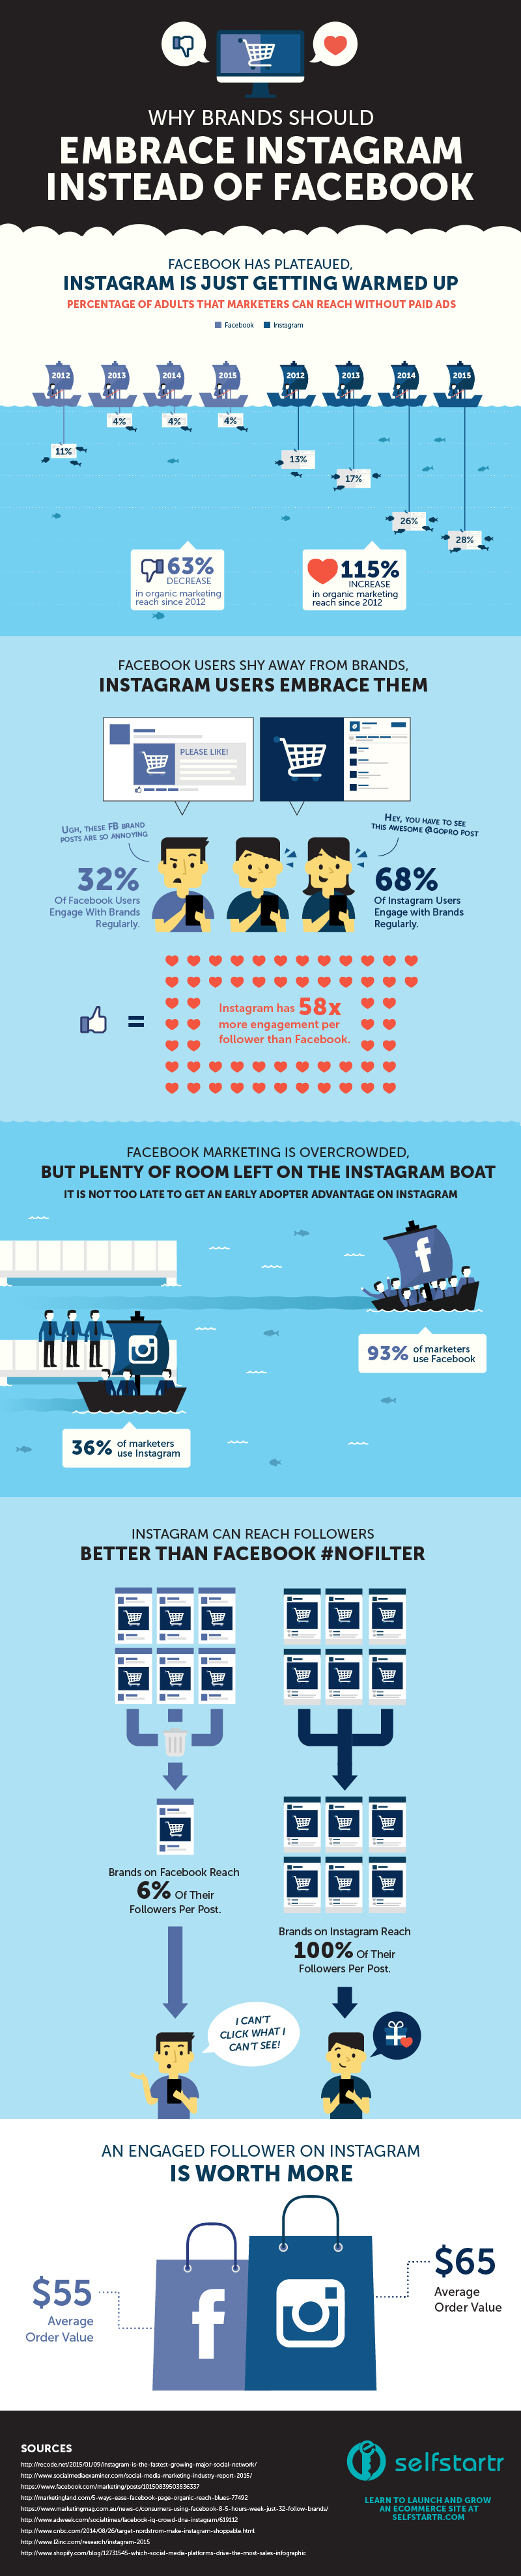 Why-Brands-Should-Embrace-Instagram-Instead-of-Facebook-INFOGRAPHIC-by-selfstartr.jpg